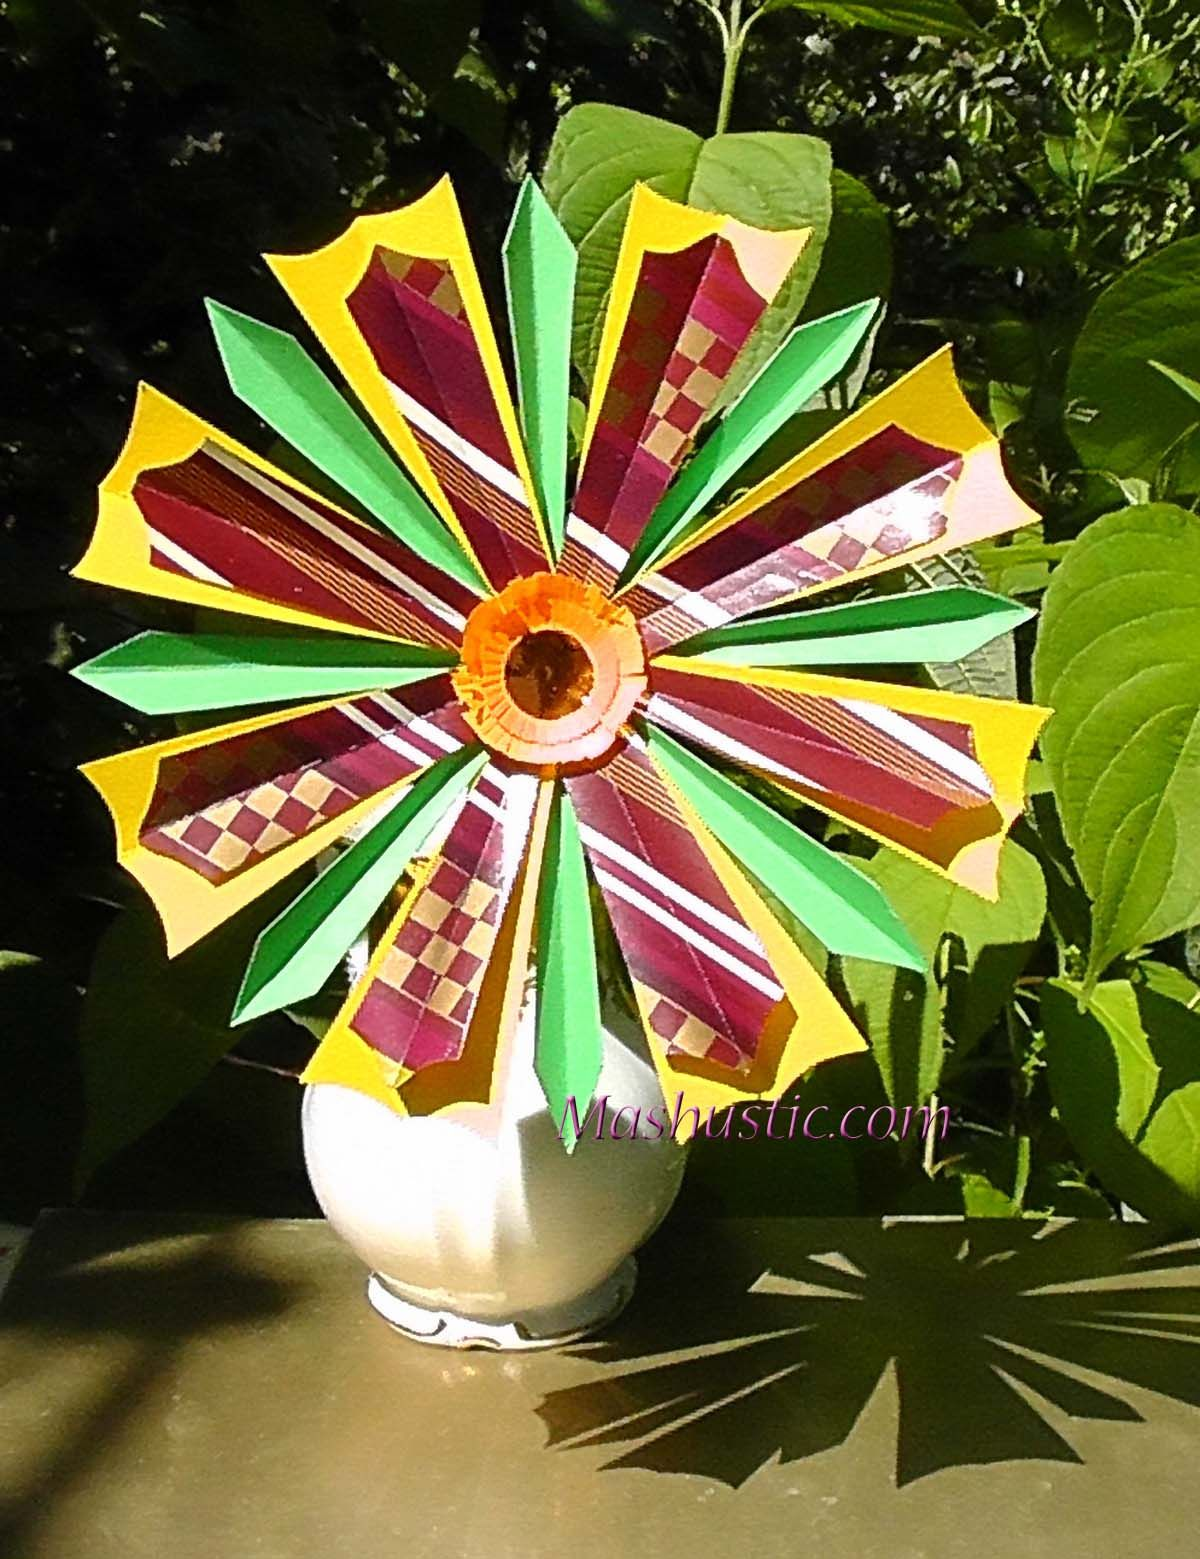 How To Make A Paper Flower Mashustic Com Crafts And Fun Stuff